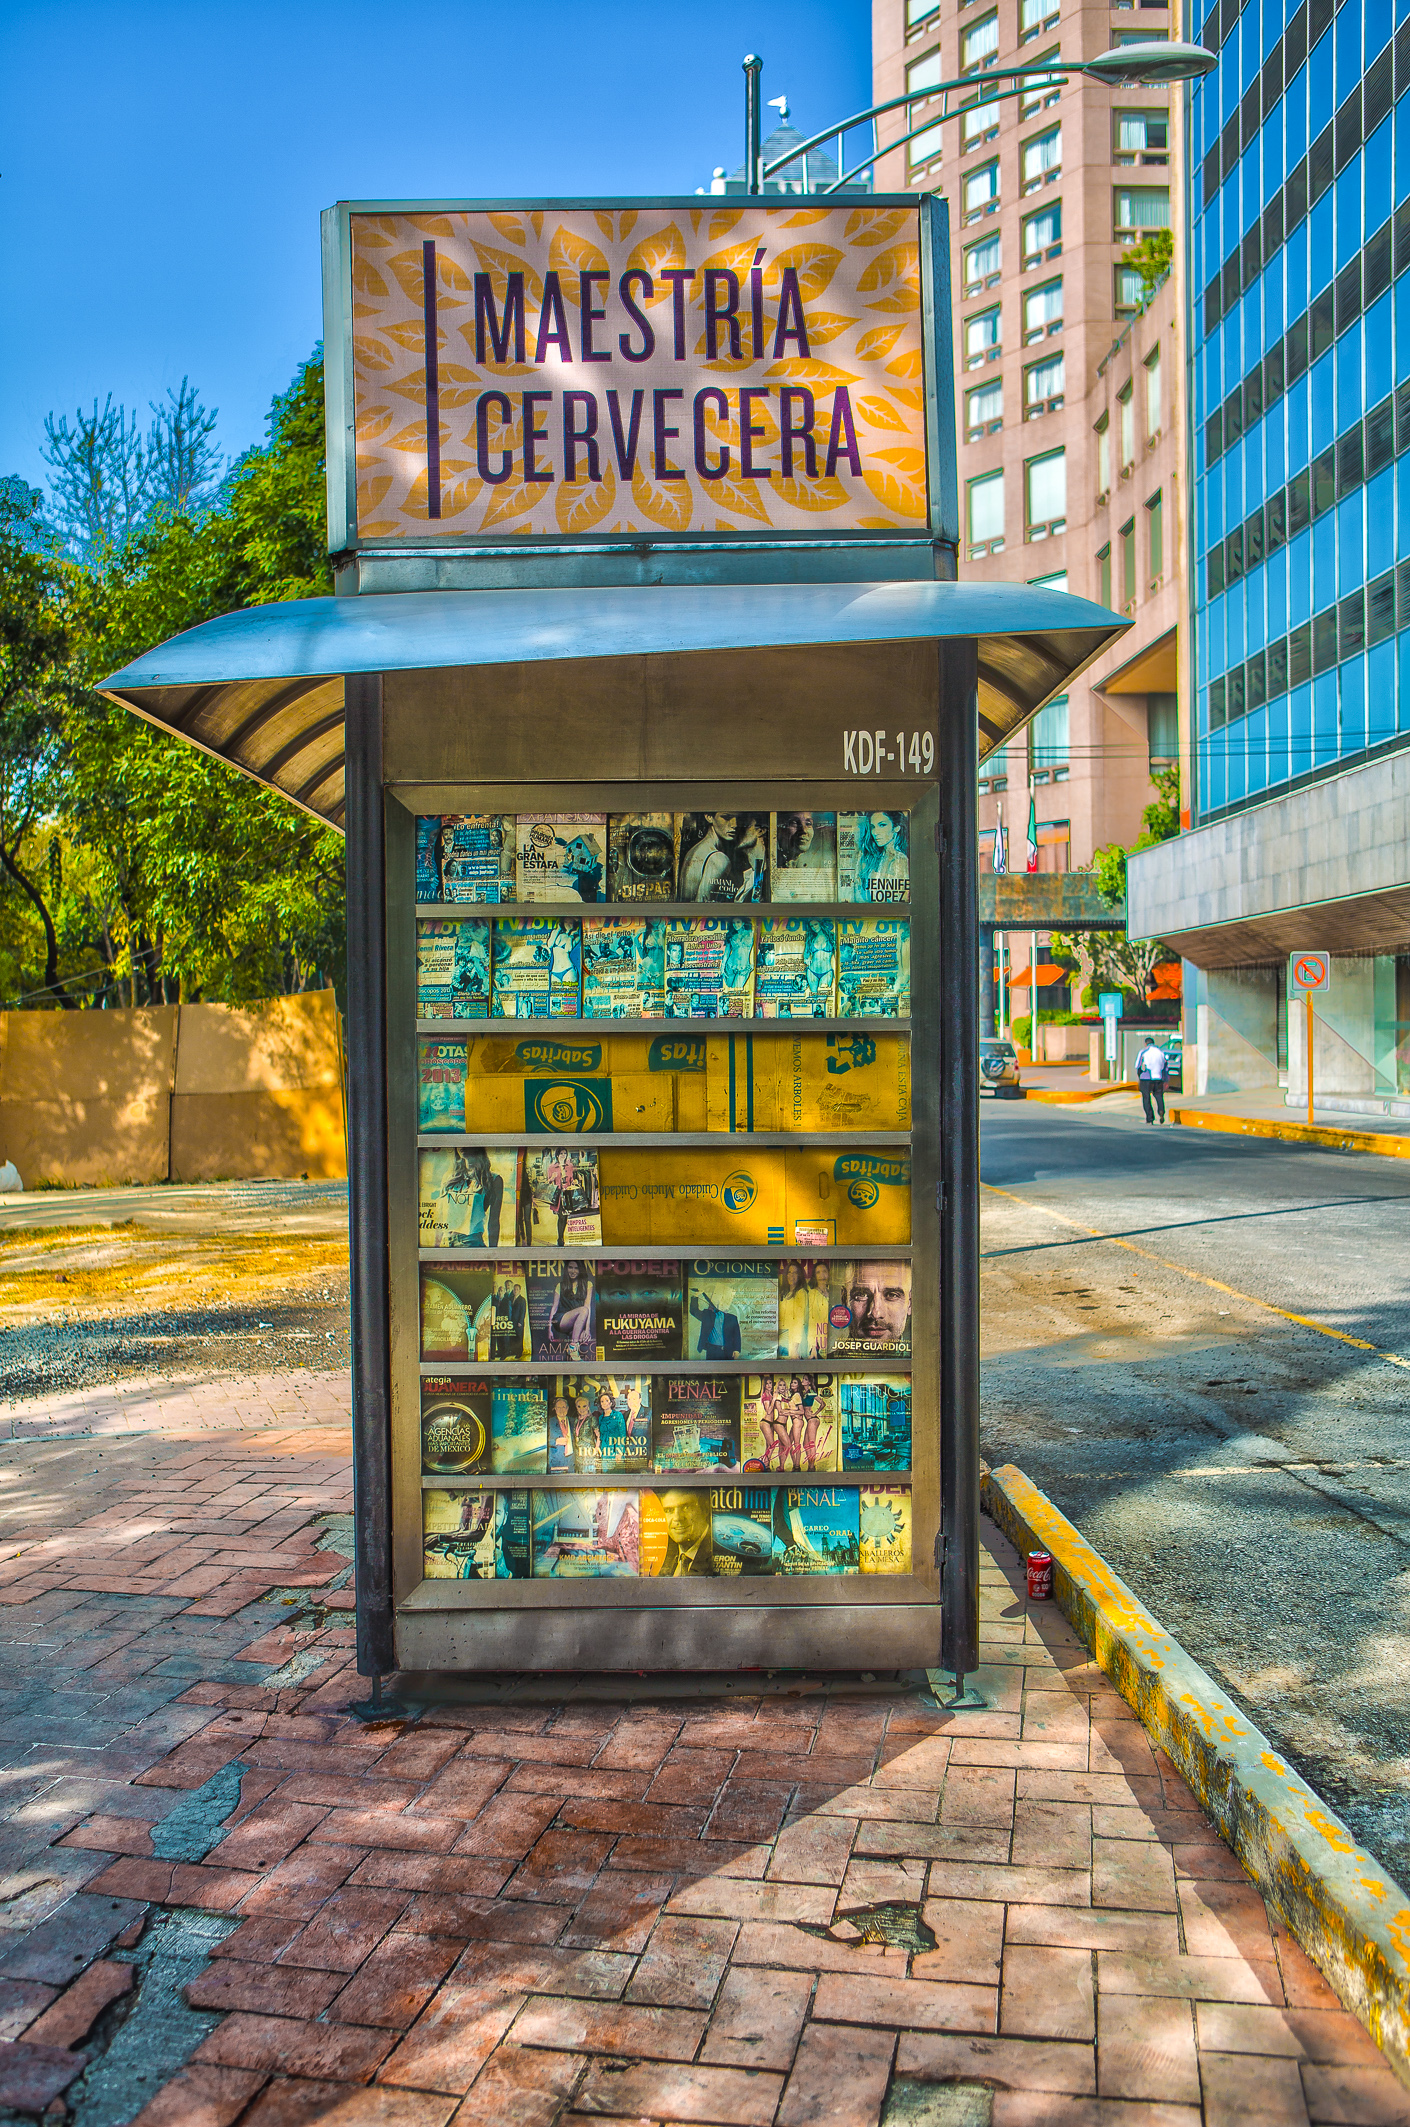 HDR image of a magazine stand in Mexico City Mexico